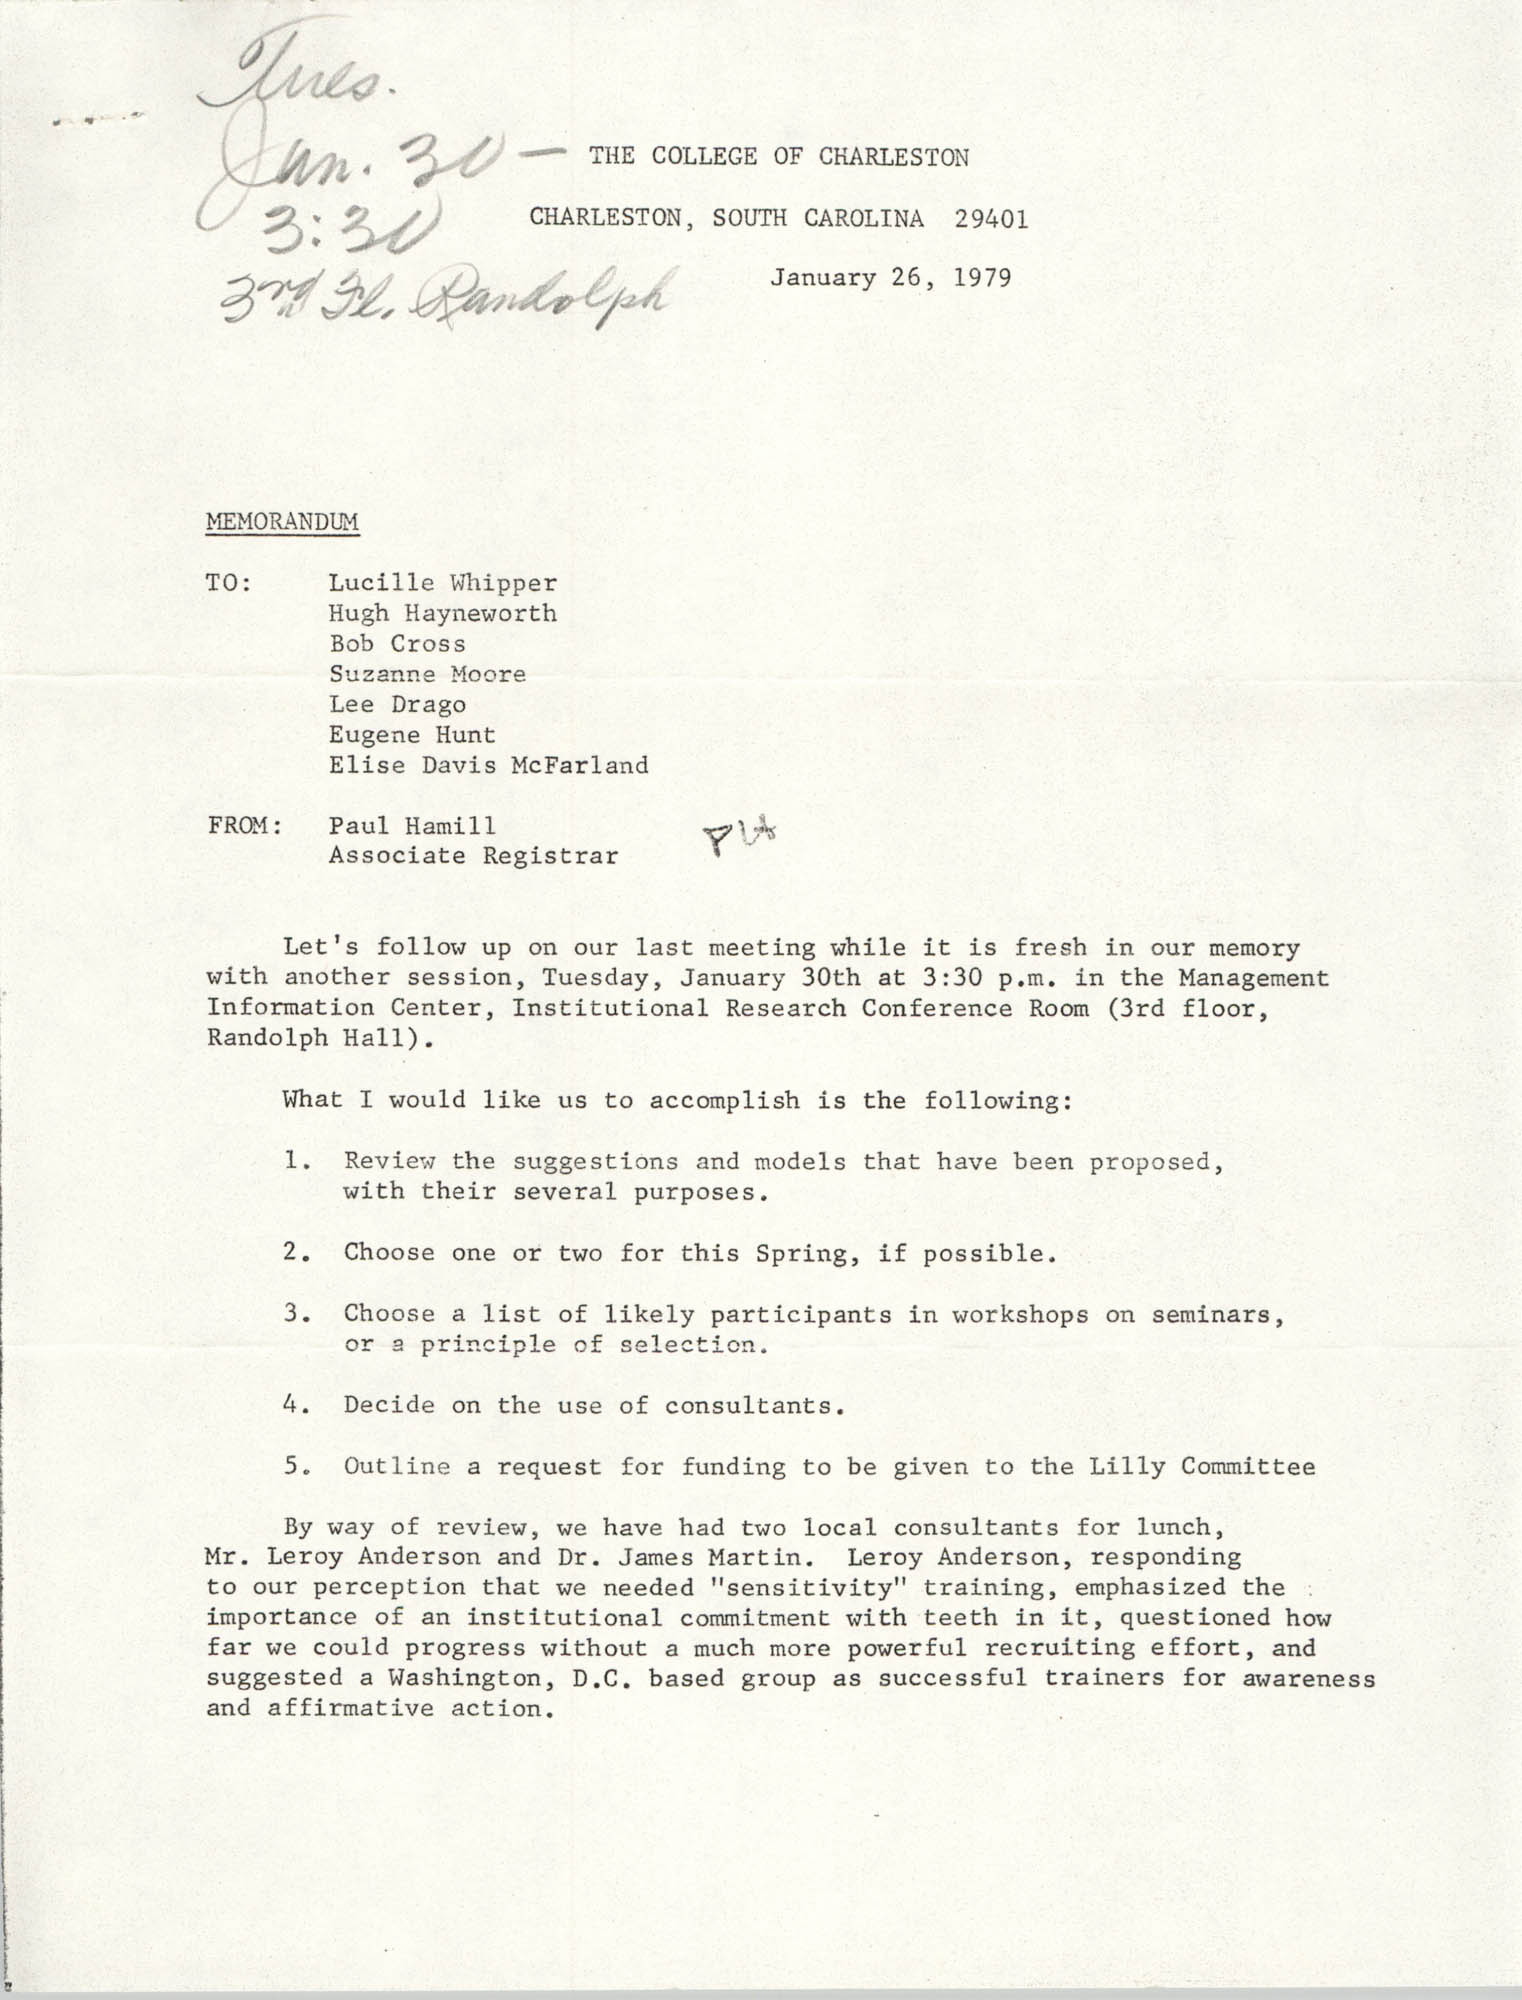 College of Charleston Memorandum, January 26, 1979